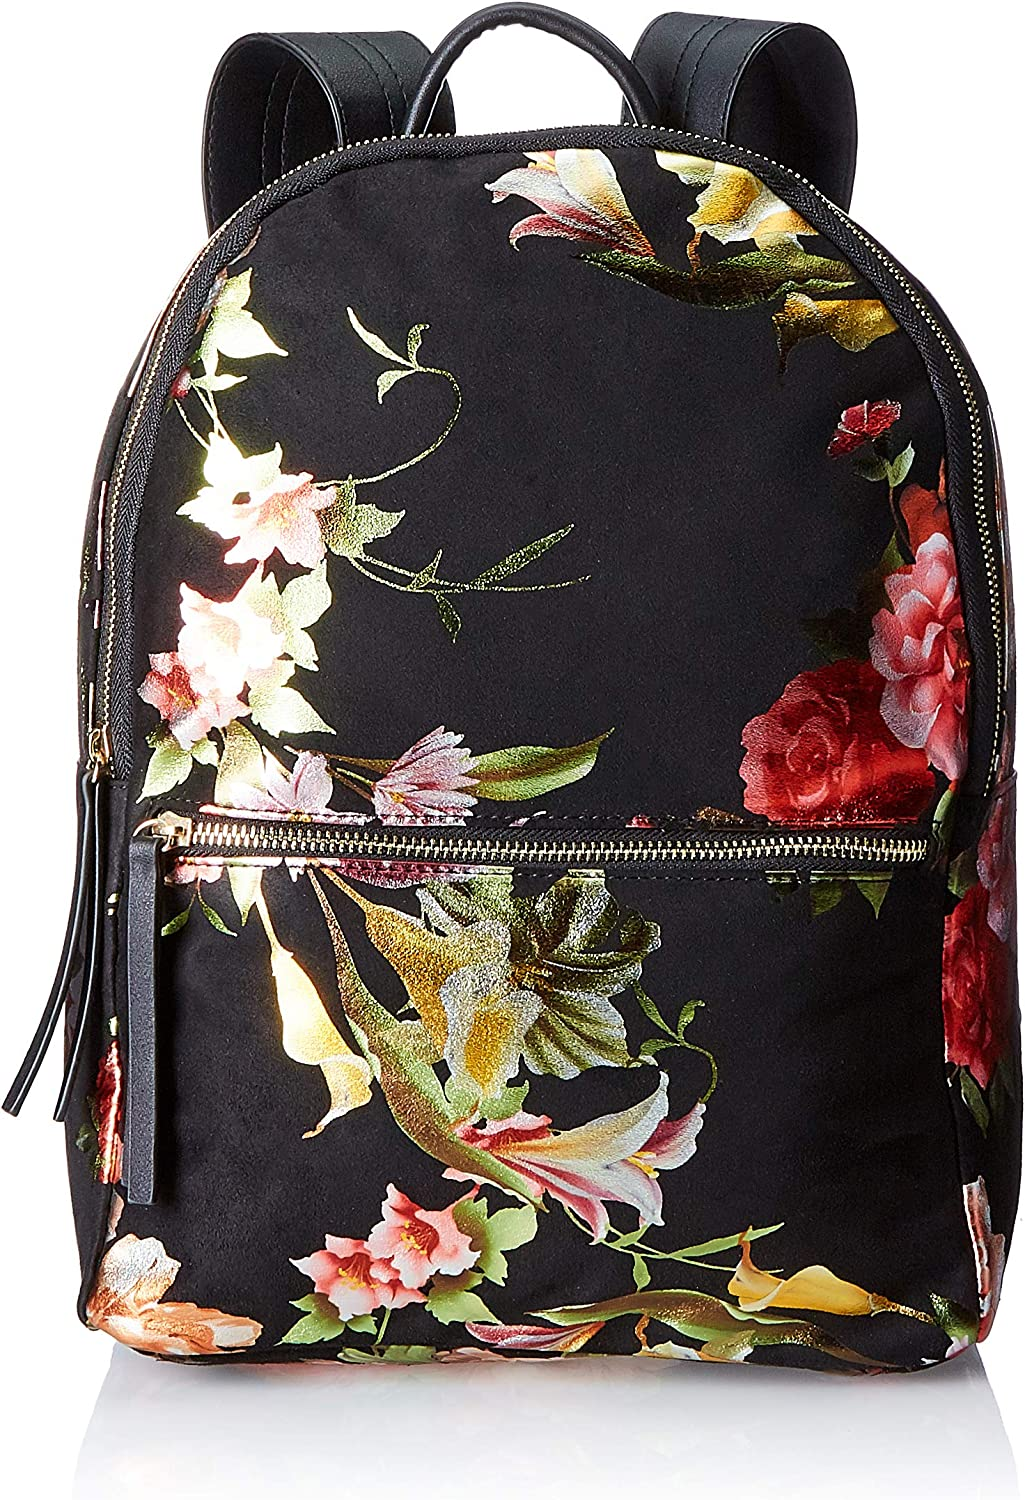 PIECES Pcfelice Backpack Dc, Women's Handbag, Black, 13x15x25 cm (B x H T)